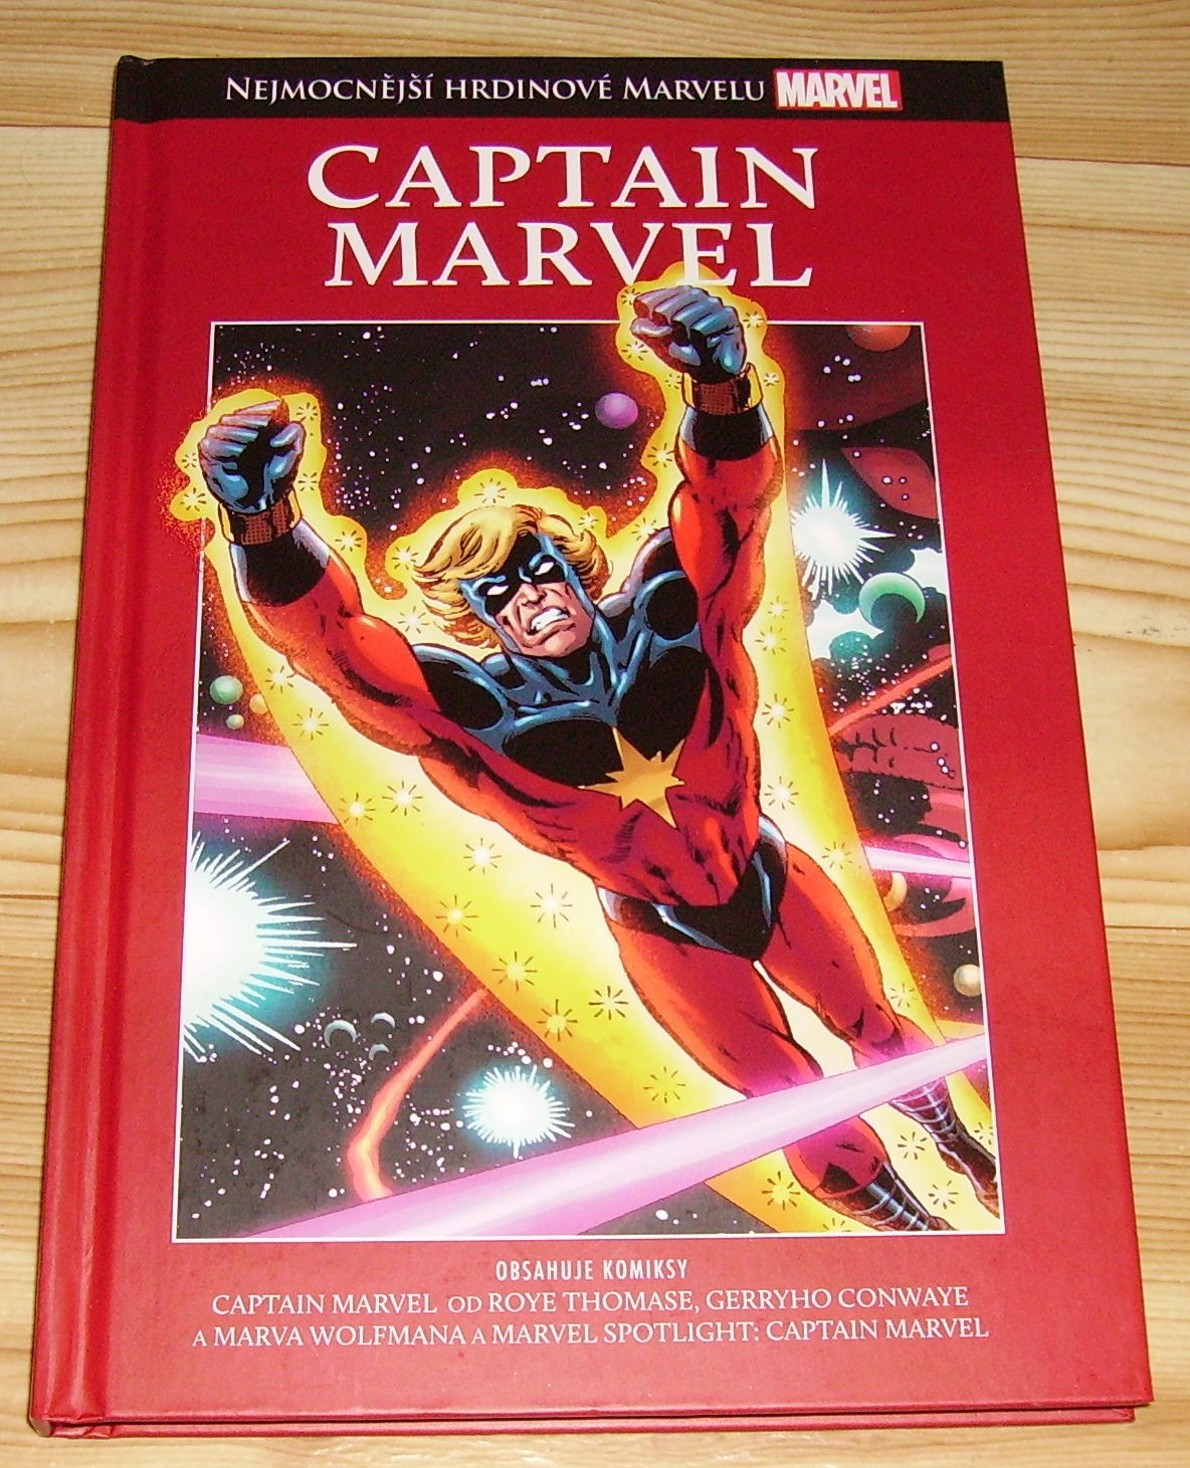 Captain Marvel (NHM 010)